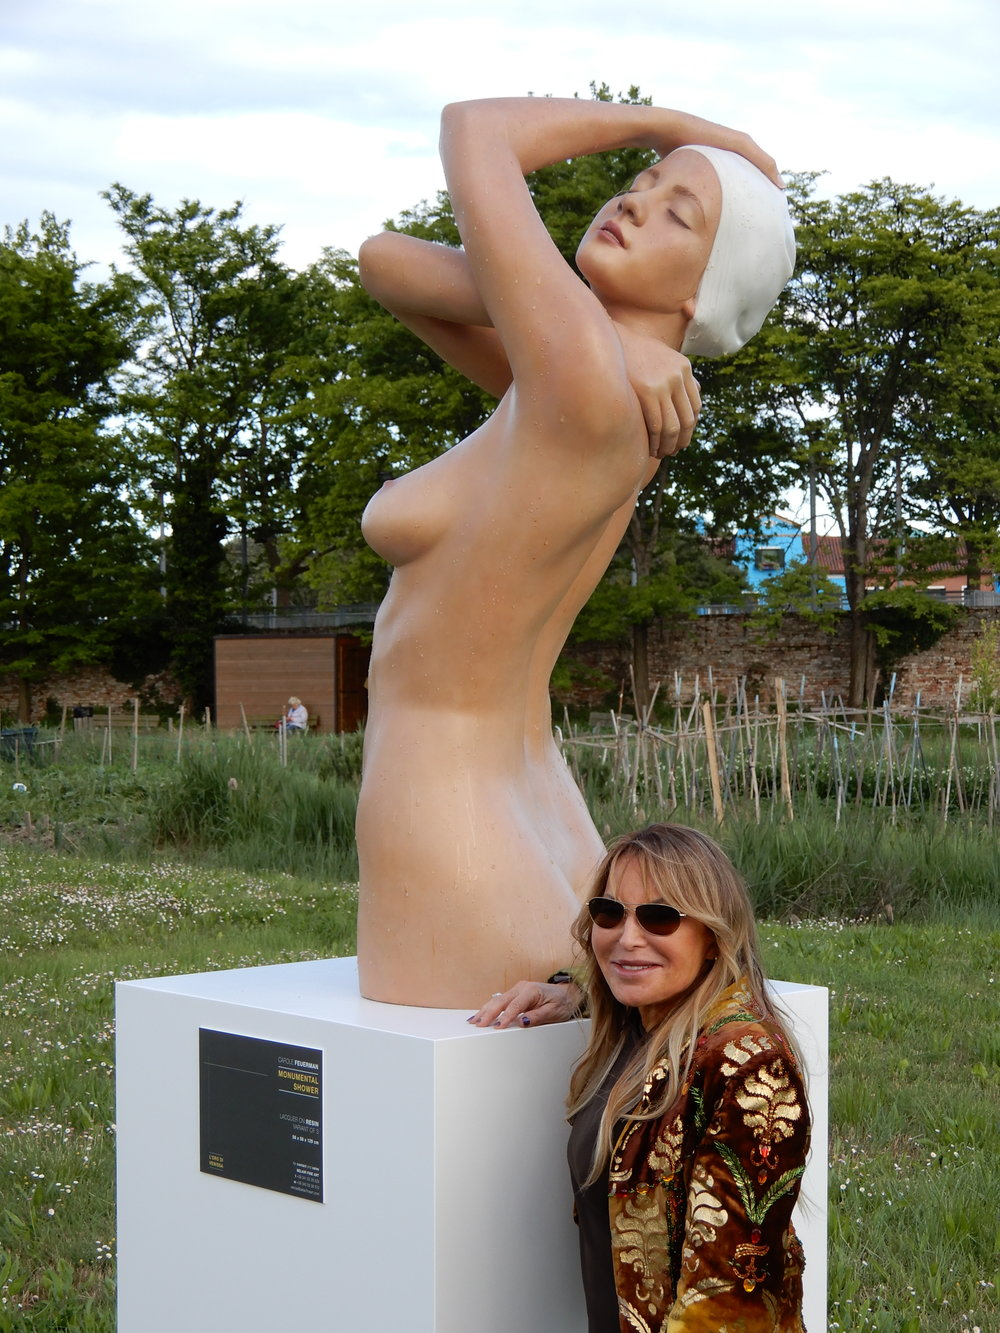 "Carole Feuerman with Monumental Shower, Bruano, Italy, 2009, Resin, 51"" x 21"" x 23"""